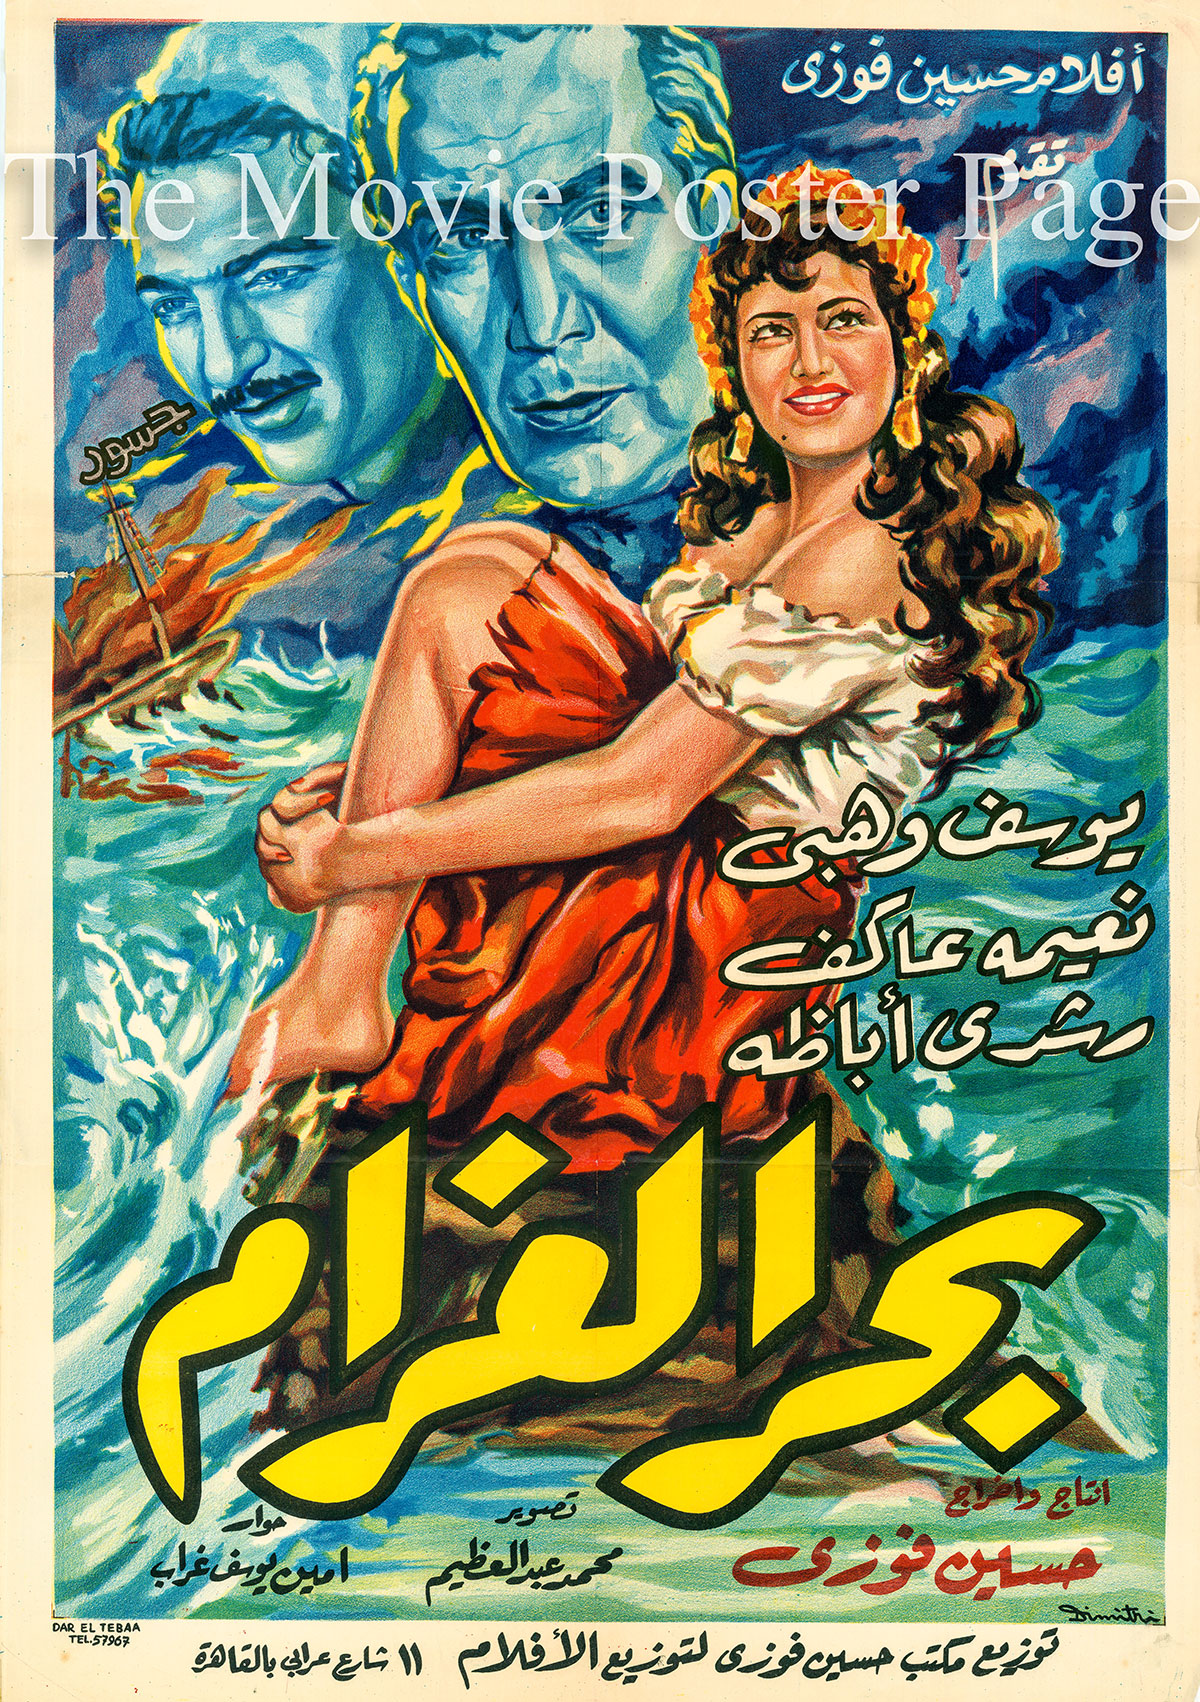 Pictured is an Egyptian stone litho film poster for the 1956 Hussein Fawzi film Sea of Love starring Youssef Wahby.